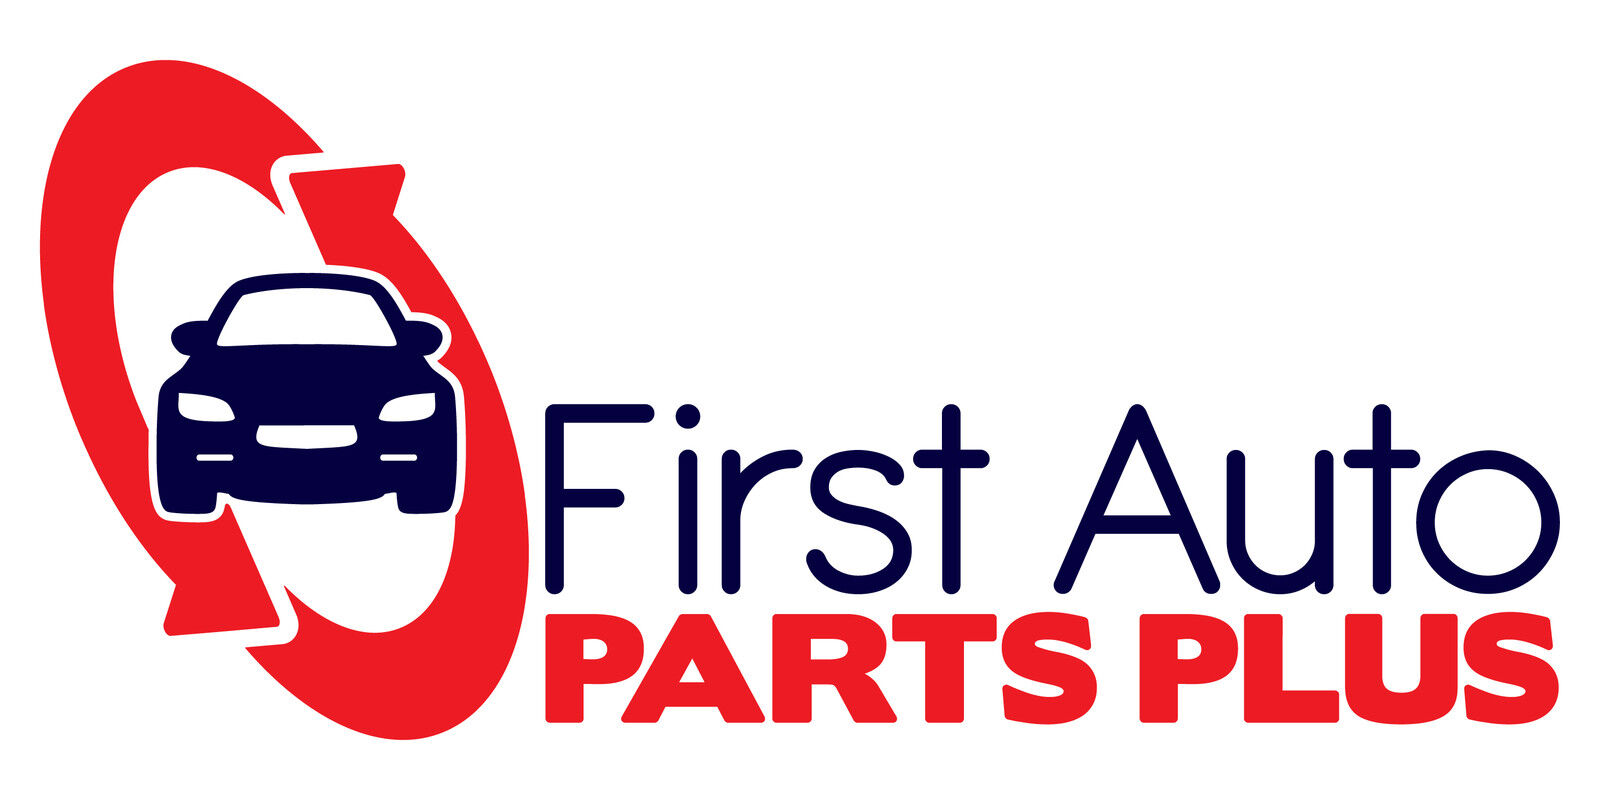 First Auto Parts